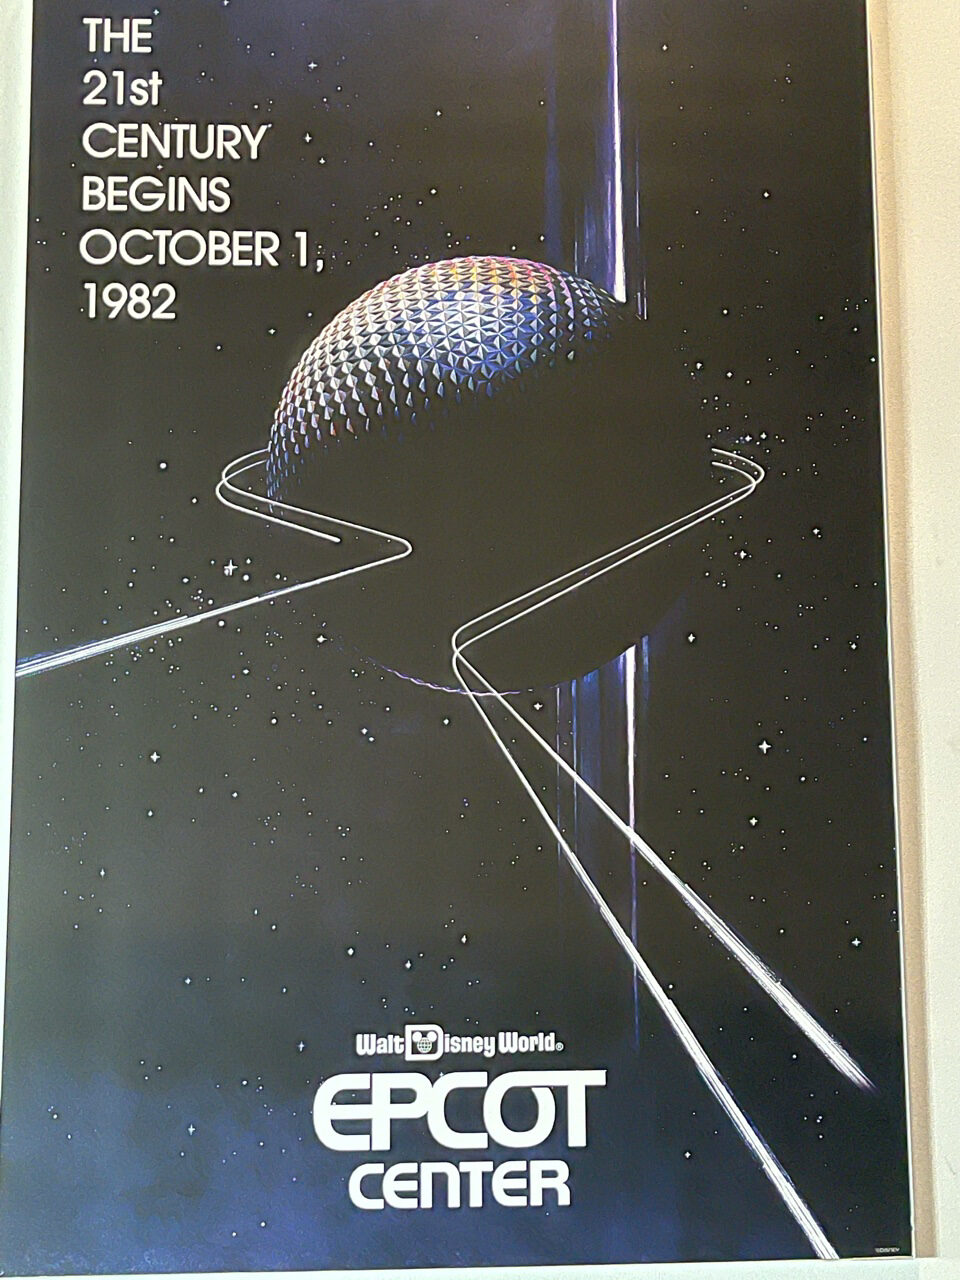 Epcot center grand opening poster